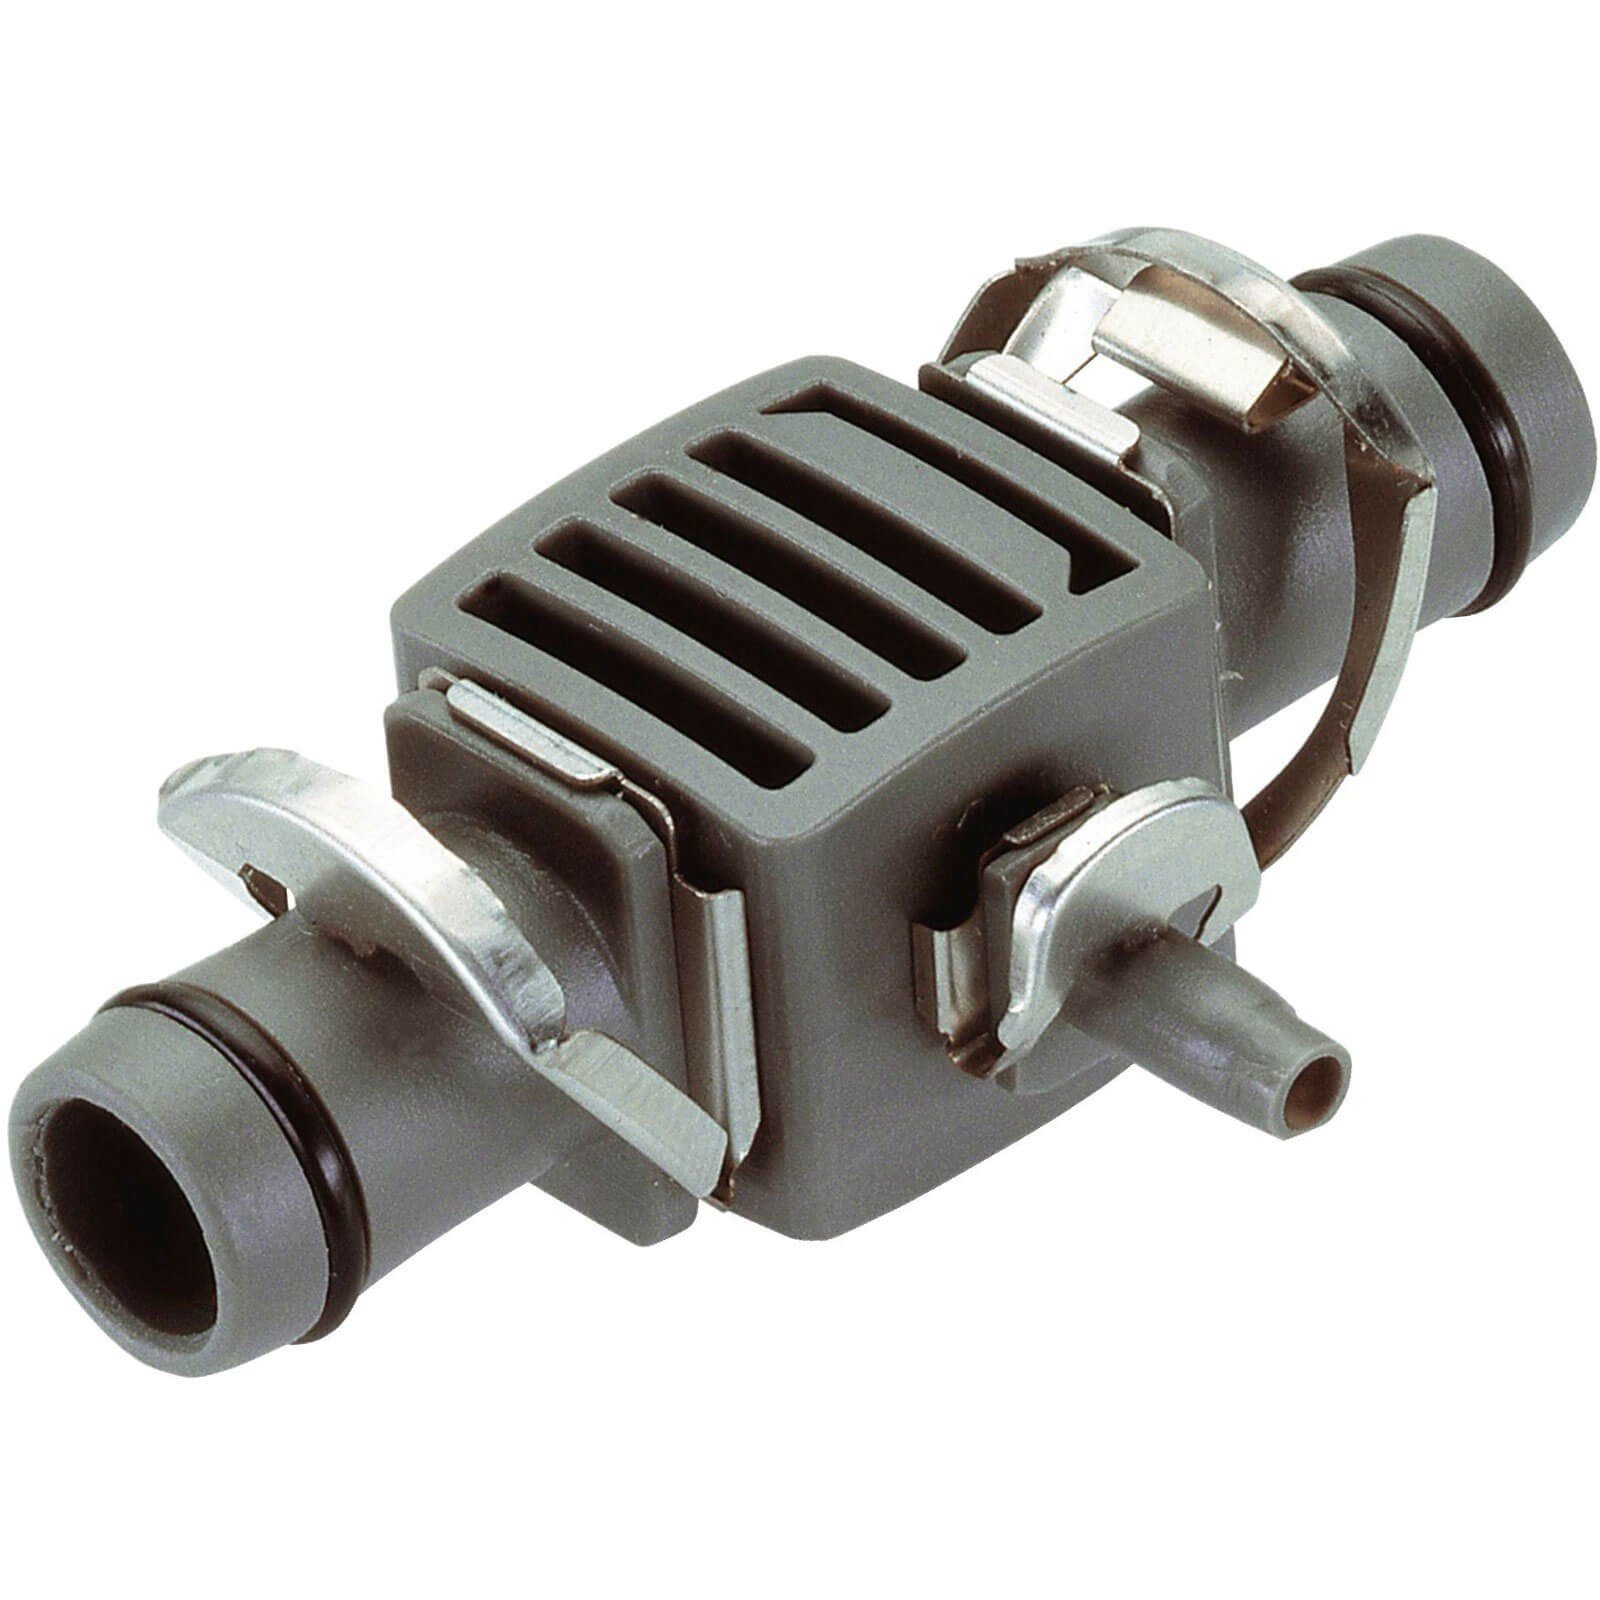 Gardena MICRO DRIP Reducing T Joint Connector | Connectors